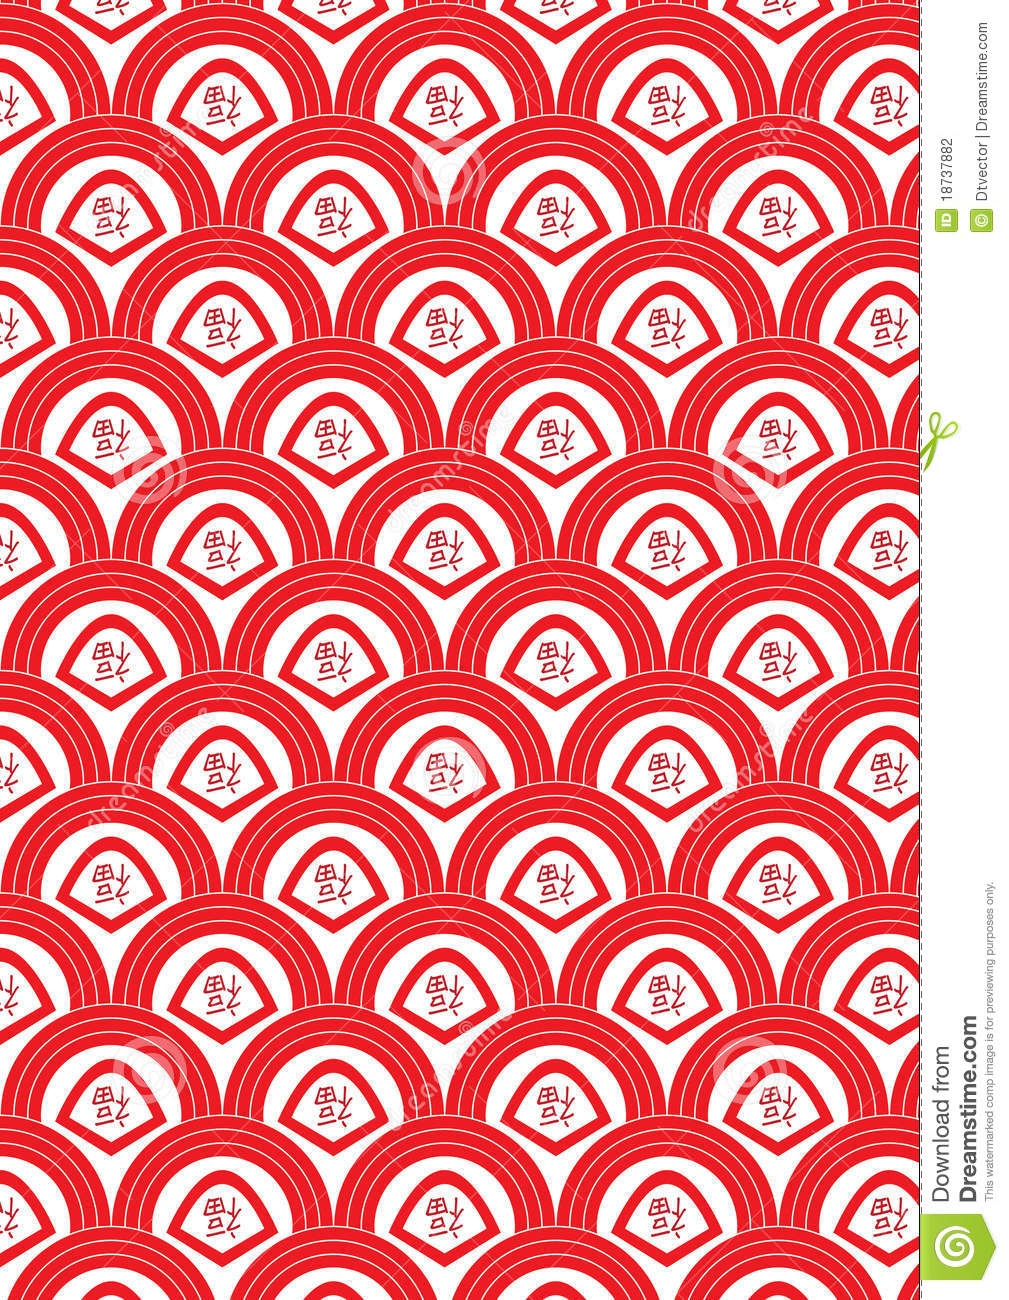 Royalty Free Stock Image Layout Design Border Colorful Paper Banners Vector Illustration Image32694826 additionally Stock Images Cartoon Wanted Poster Bandit Face D Fat Cowboy Red Bandanna Hat Isolated White Background Eps File Available You Image35172594 together with File 1101 Ruby Rose 061722 likewise Royalty Free Stock Images Abstract Tree Children Paintings File Eps Format Image34448539 moreover Stock Image Happy Kitchen Silverware Cartoon Set Colorful Cute Cutlery Background Vector File Layered Easy Manipulation Custom Image32019461. on file symbol thumbs up color